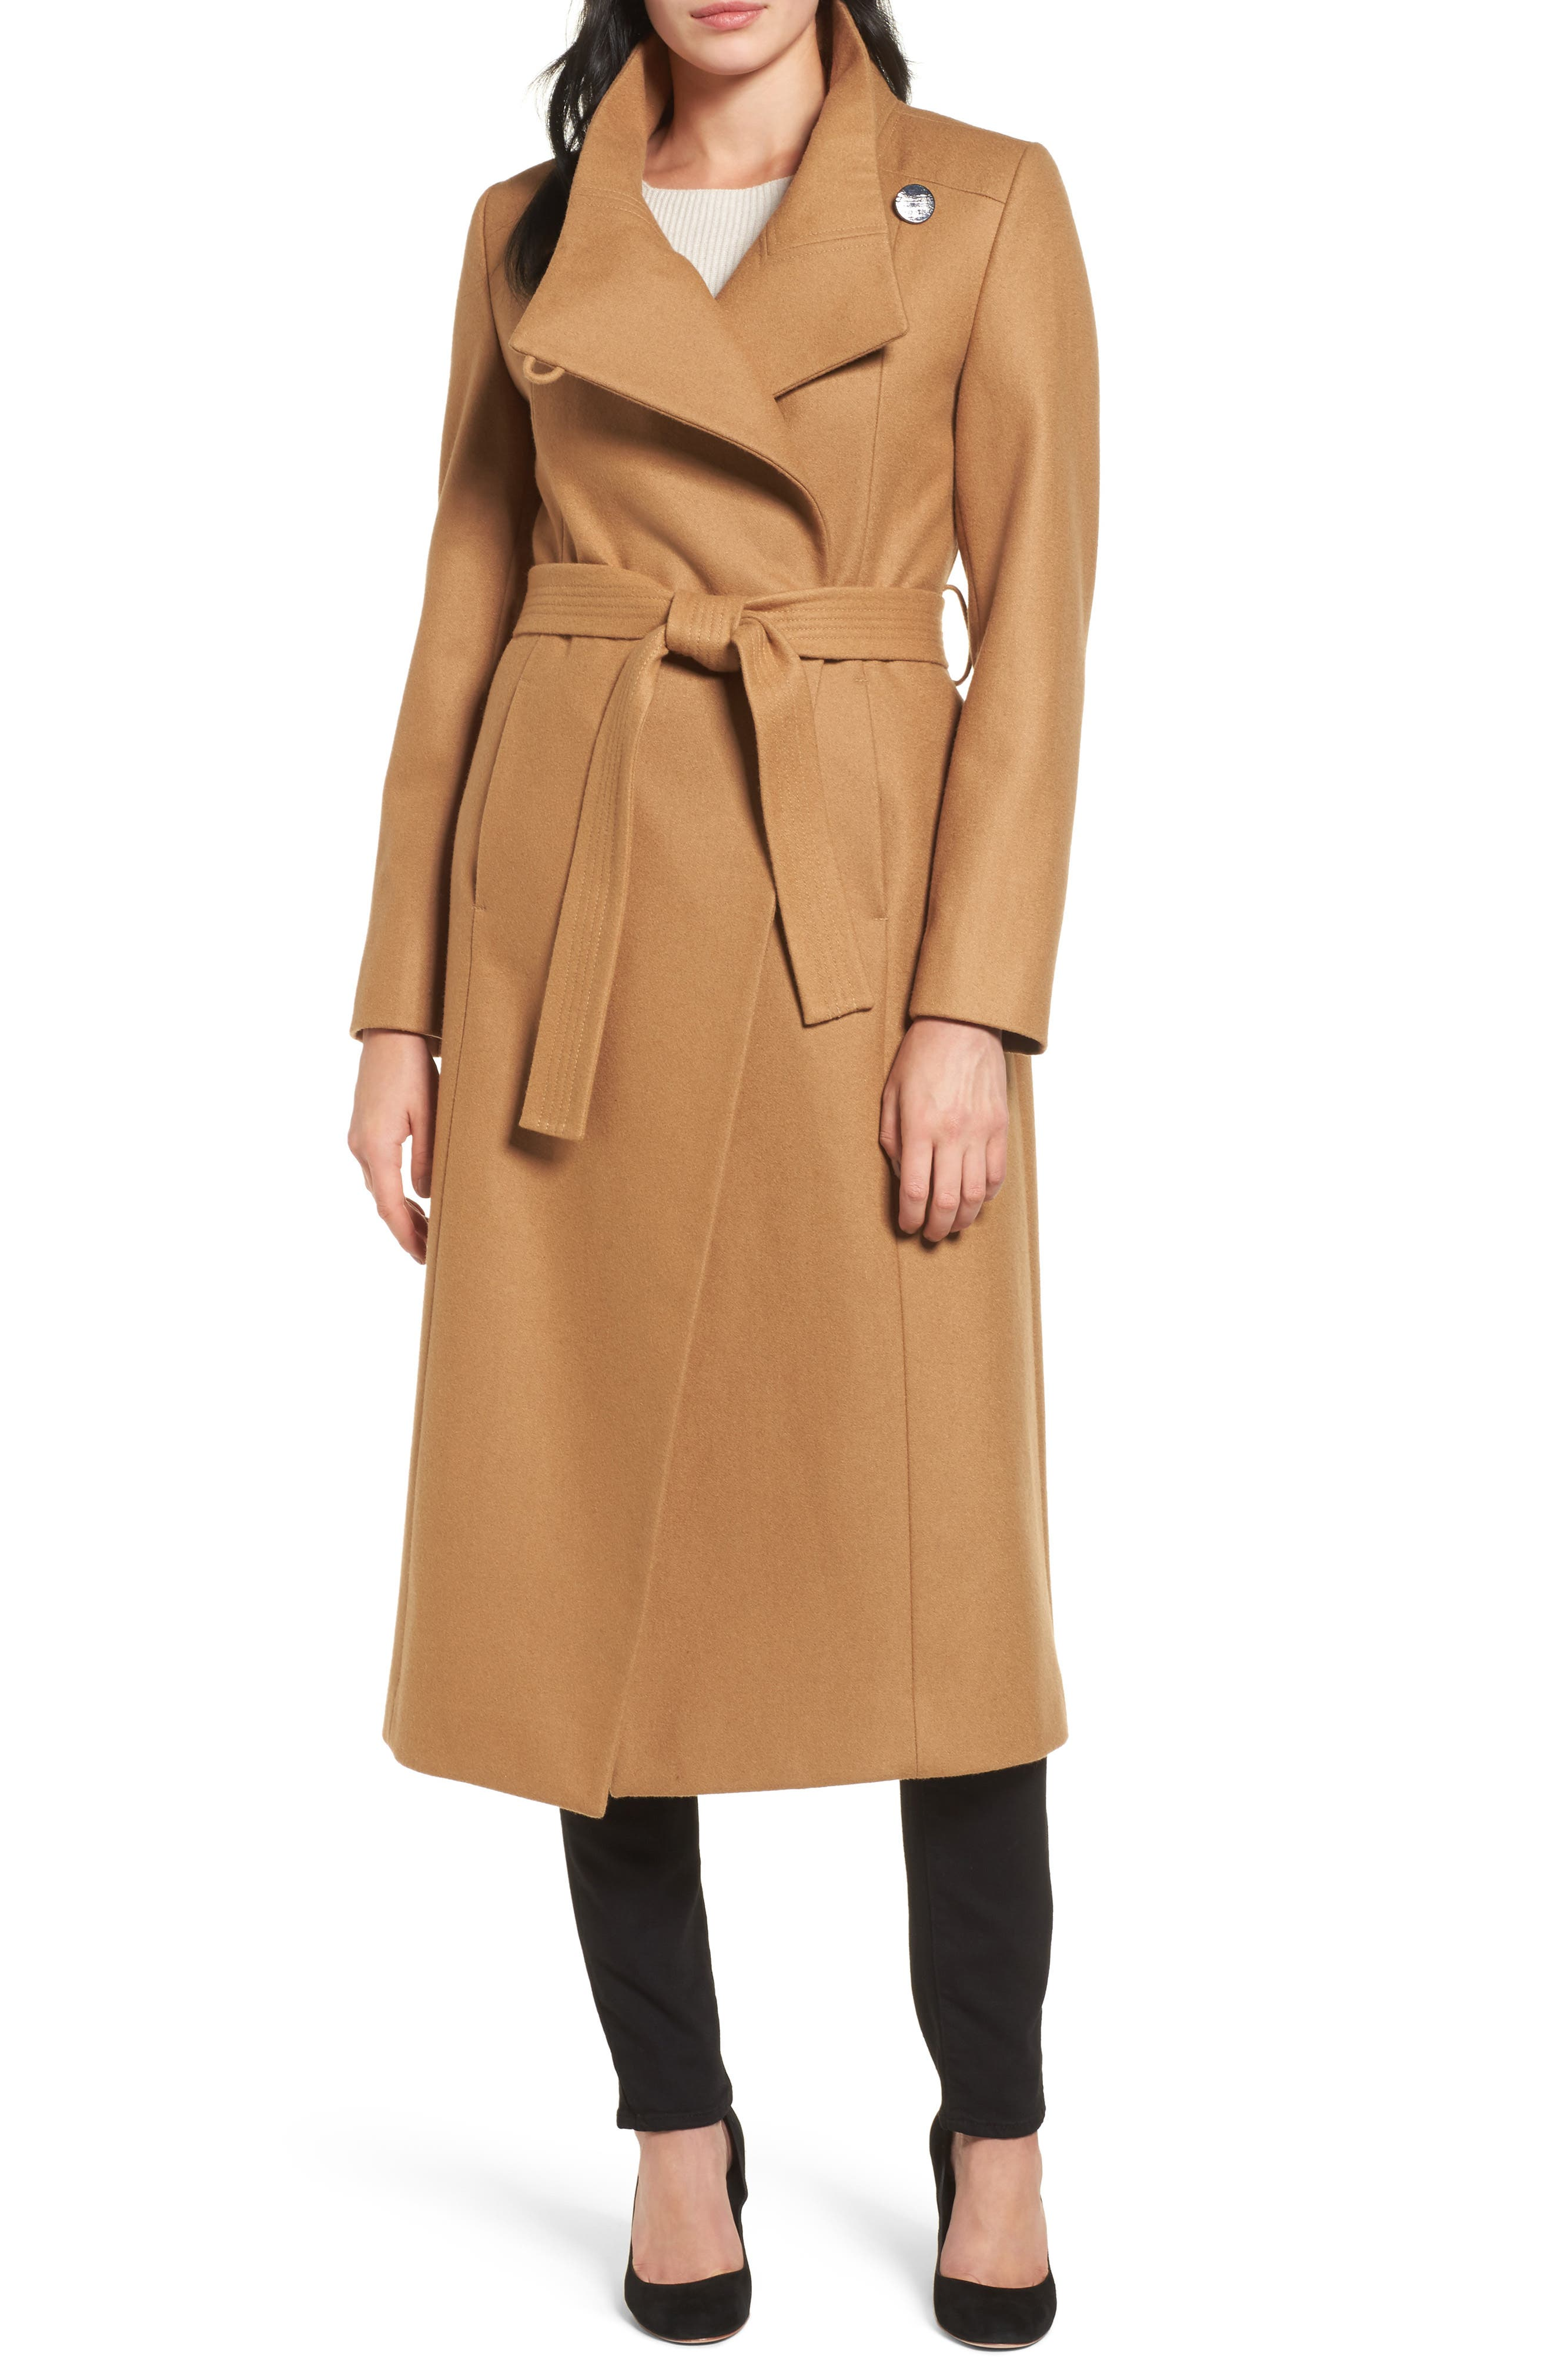 Alternate Image 1 Selected - Kenneth Cole New York Wool Blend Maxi Wrap Coat